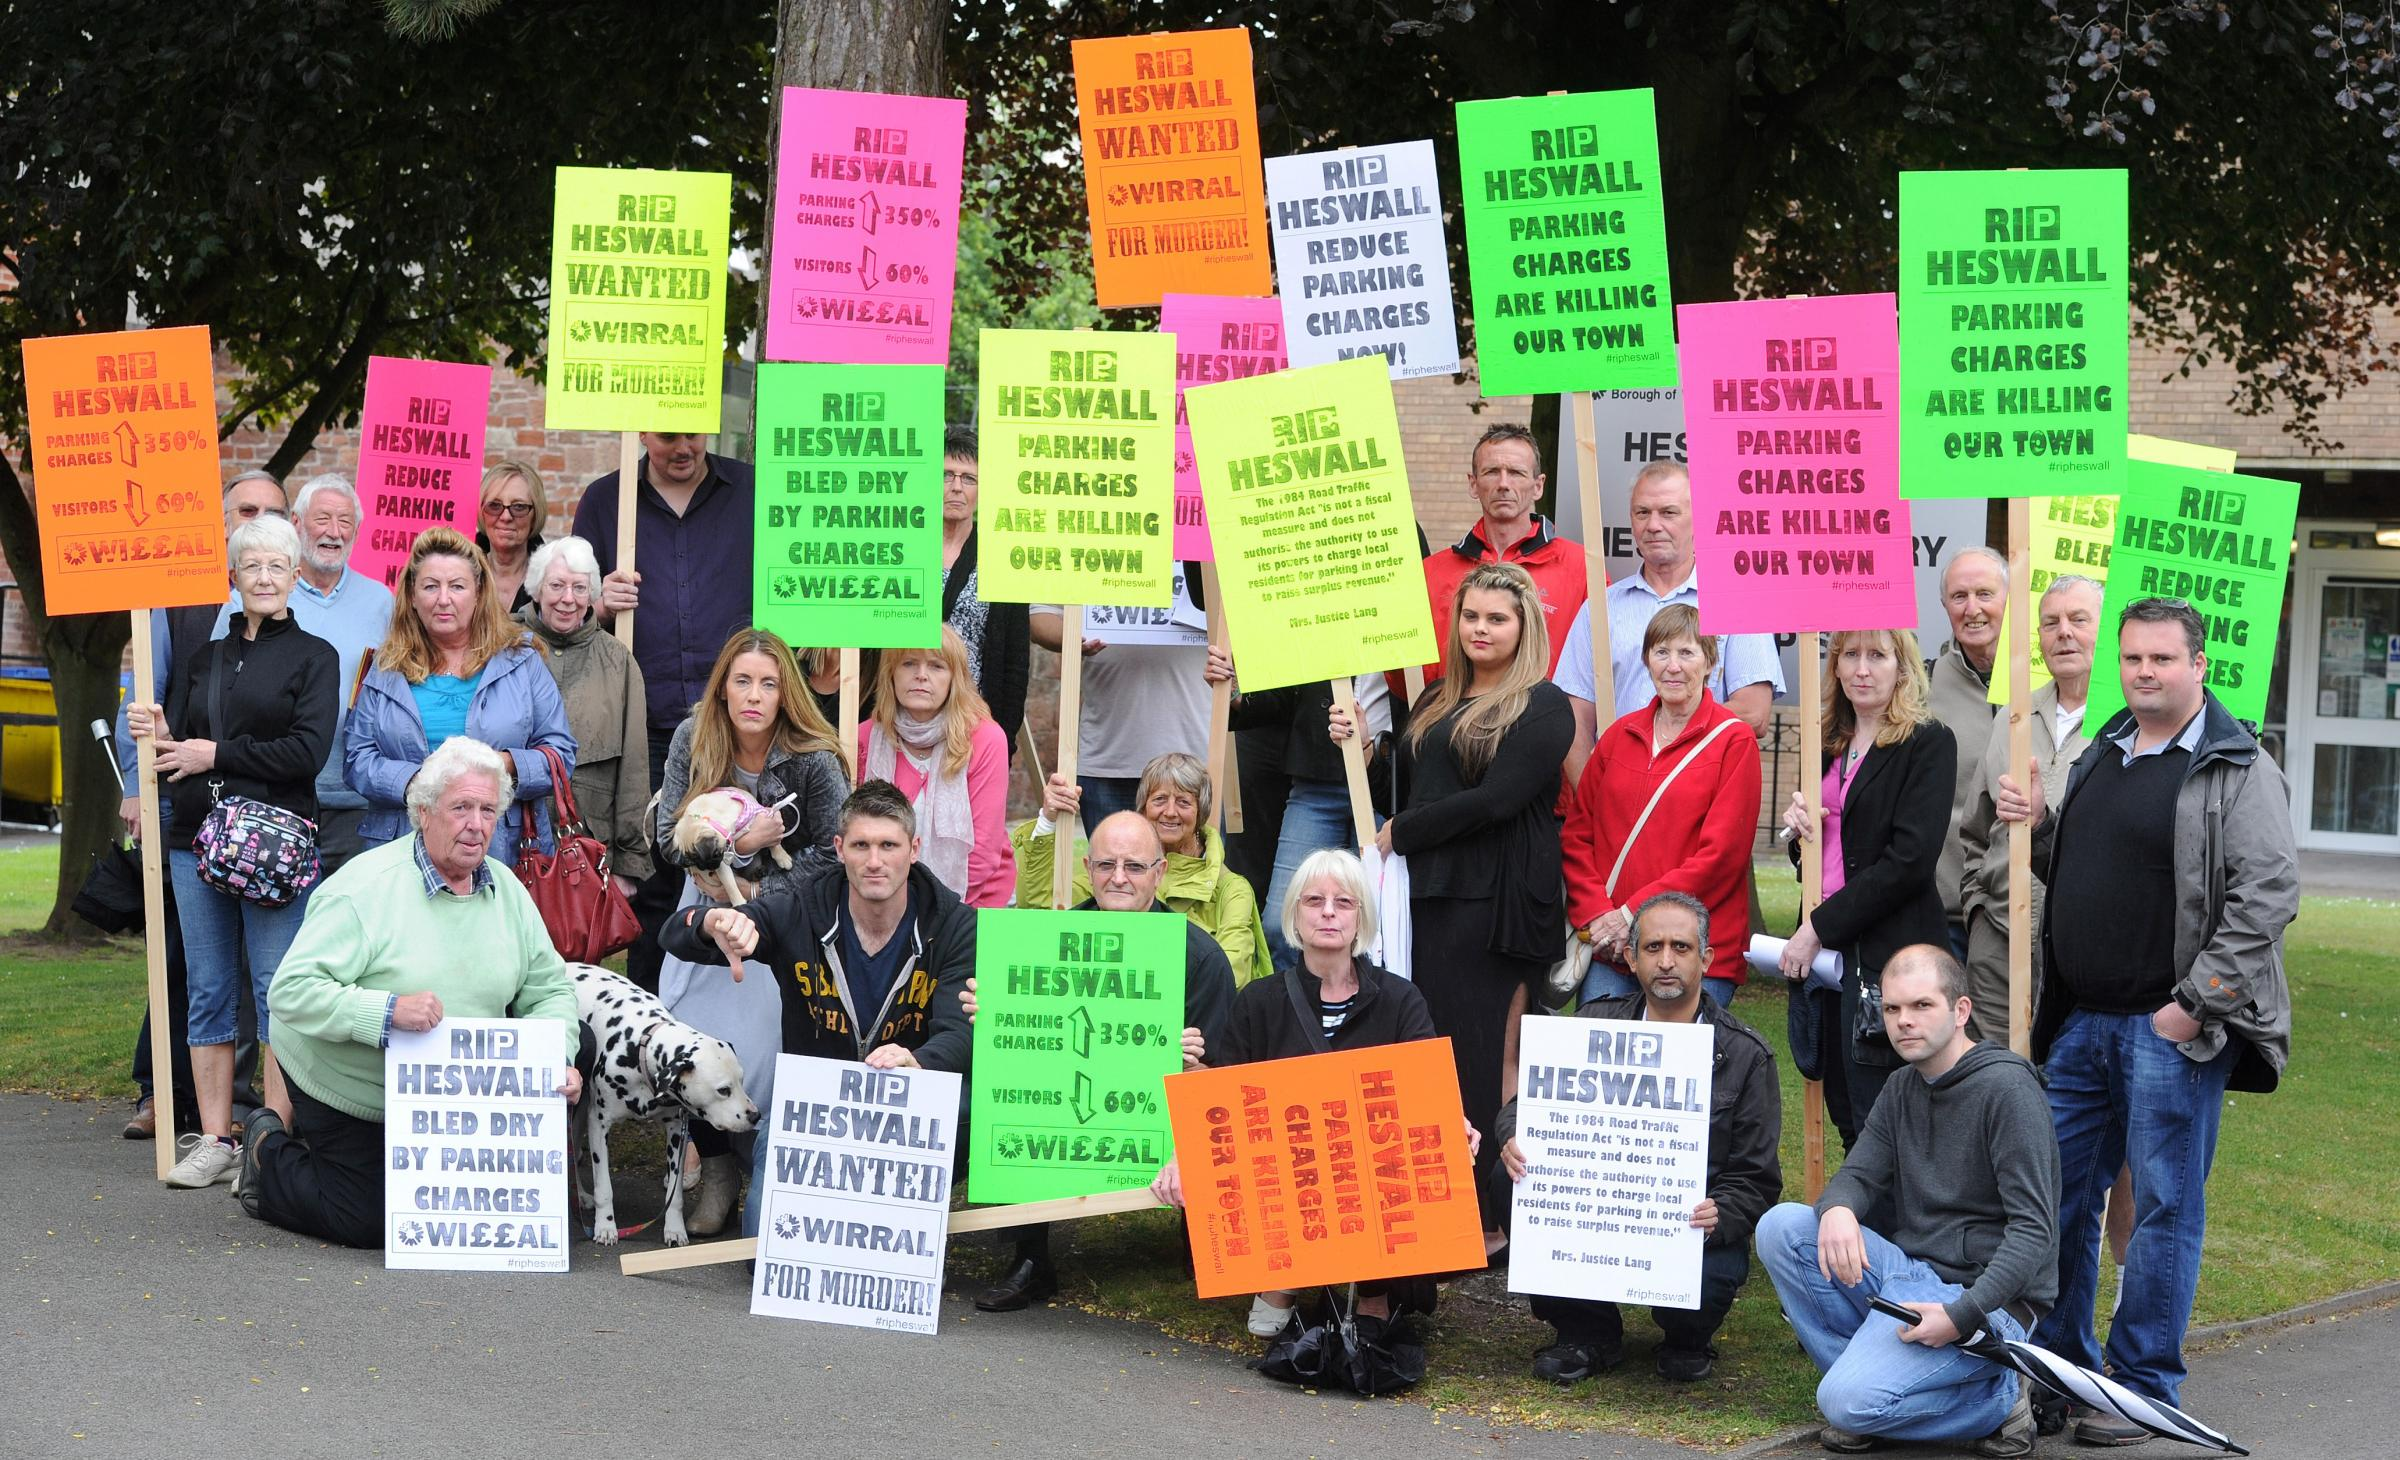 VIDEO: Heswall protests against parking charges that are 'destroying' the town